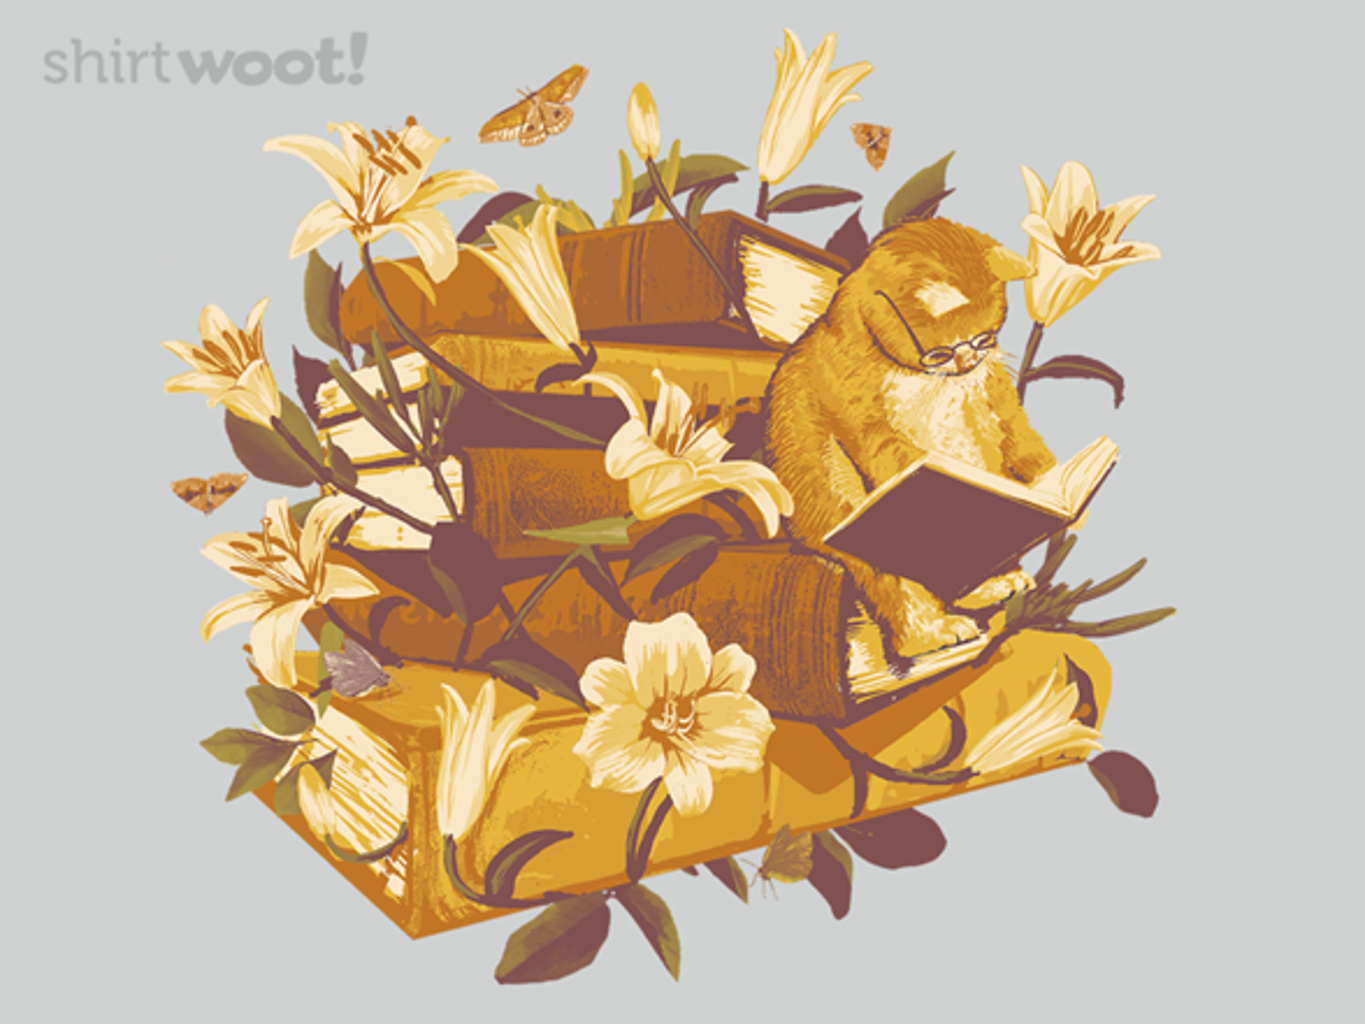 Woot!: Lily Kitty - $15.00 + Free shipping